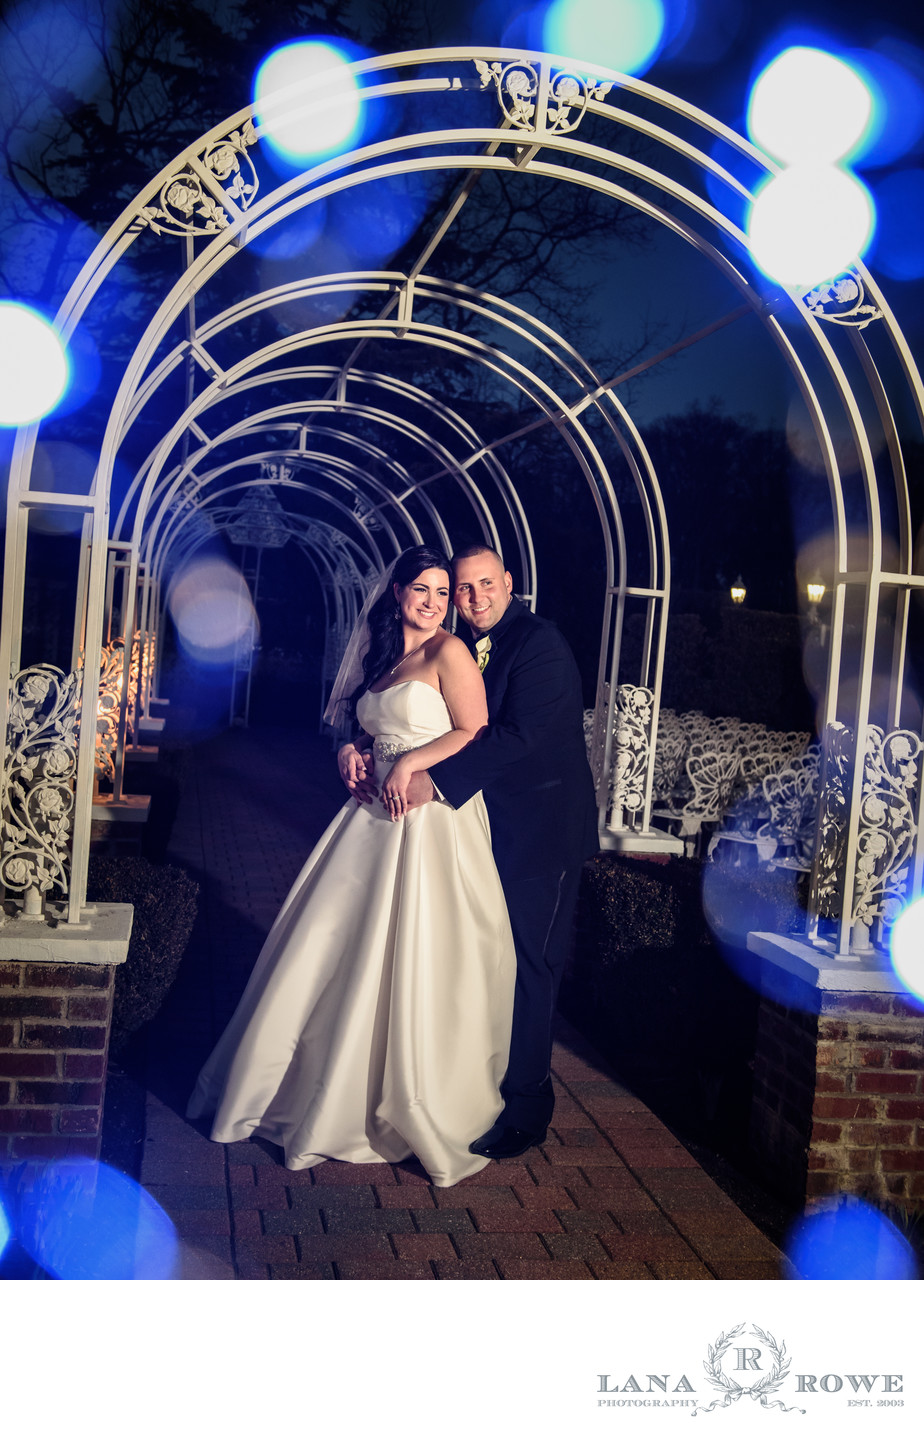 Bride and Groom with blue lights